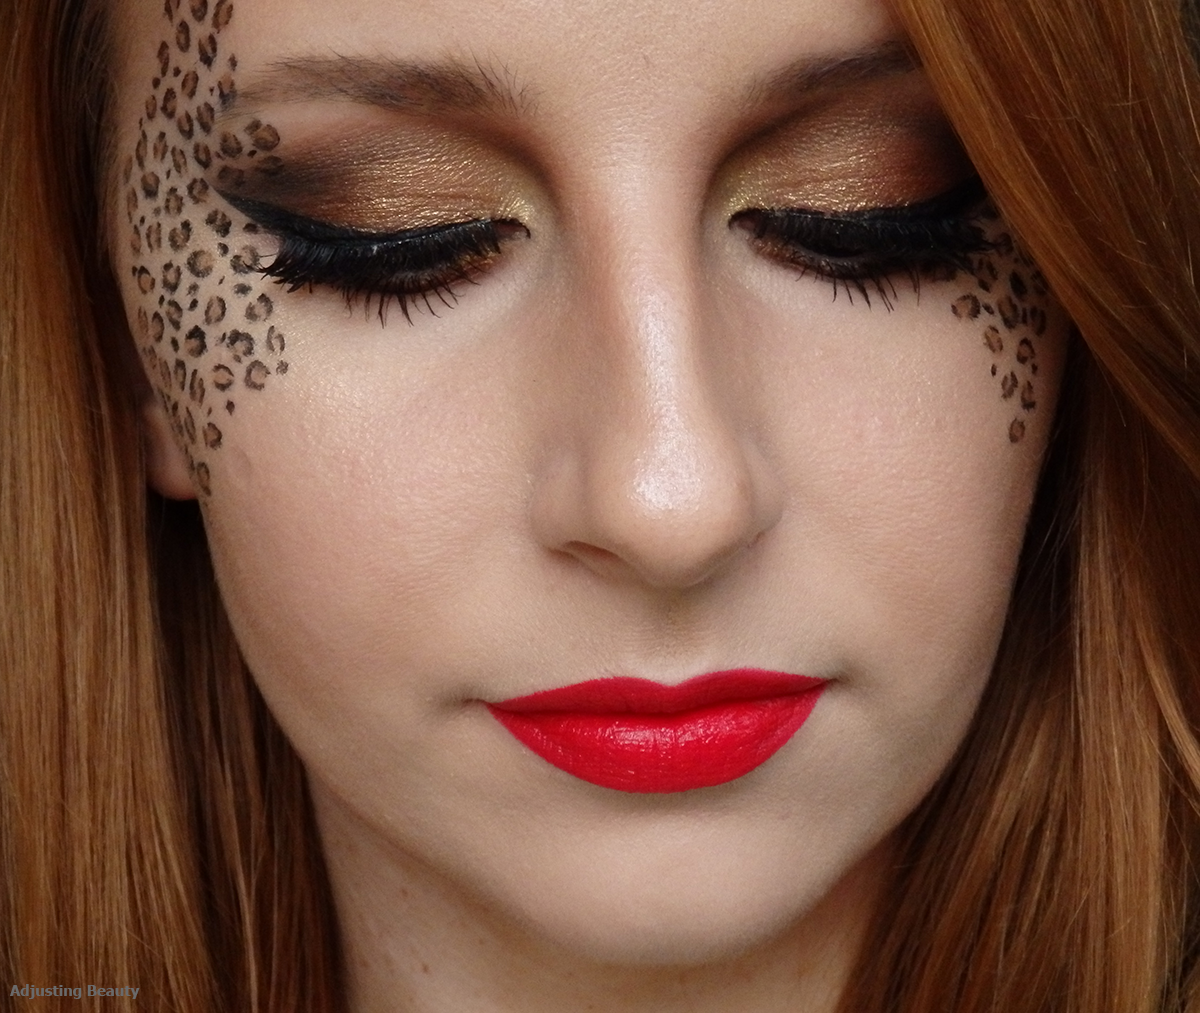 pretty leopard makeup adjusting beauty